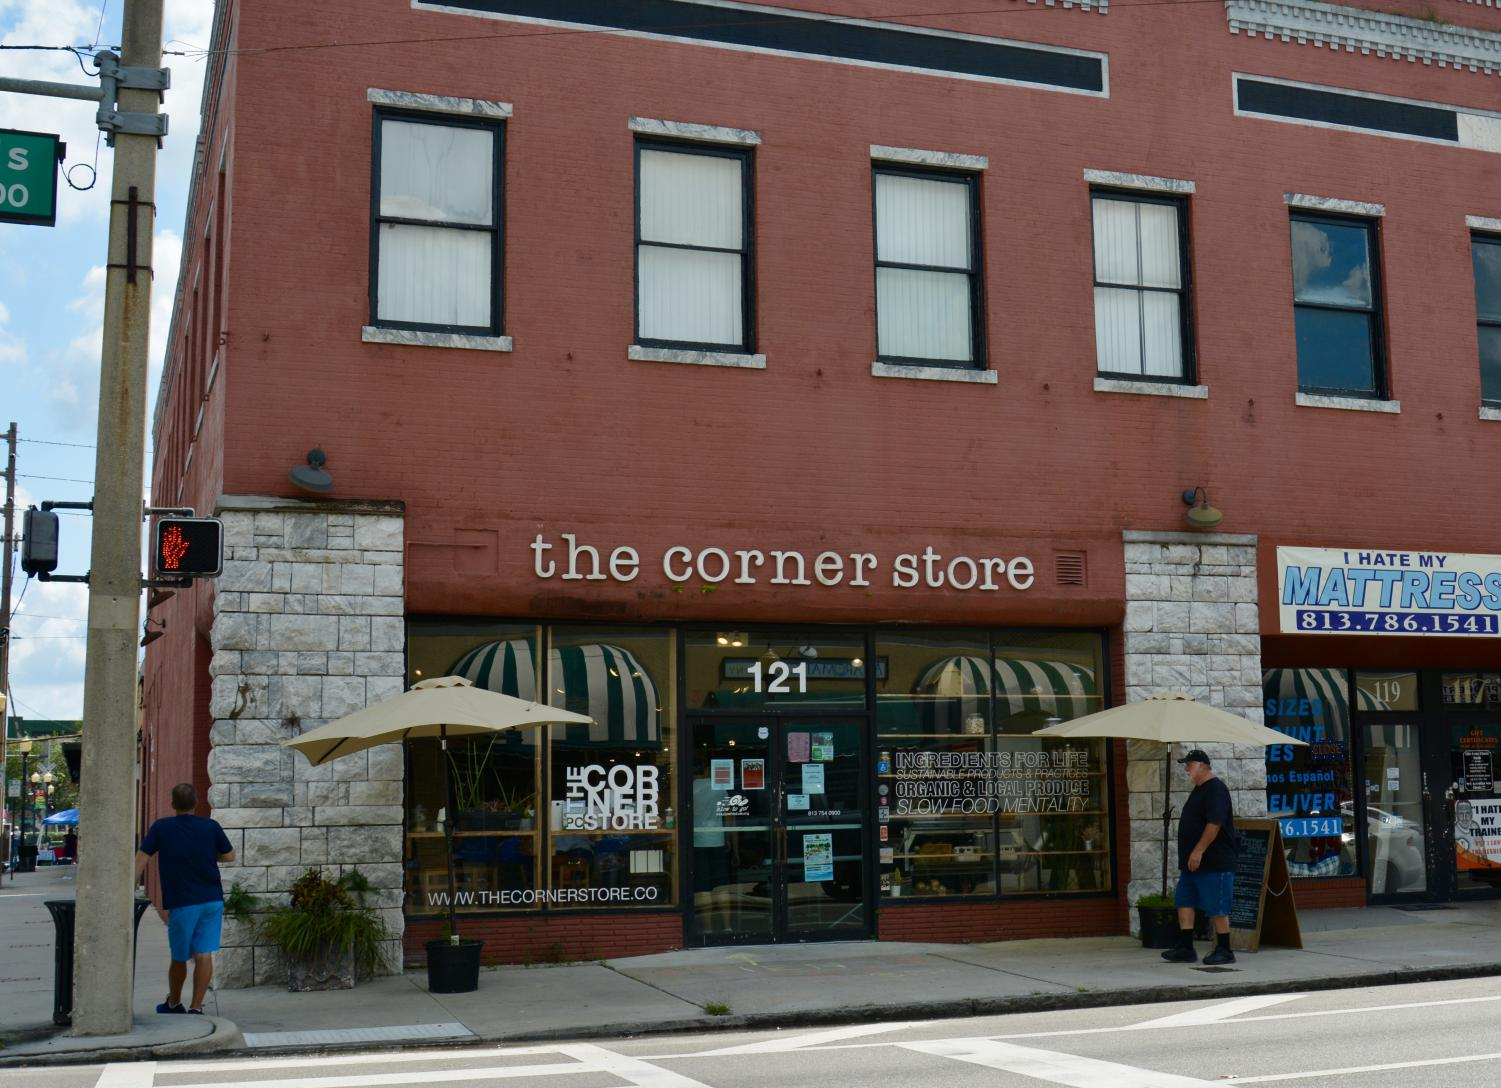 The Corner Store is located in Historic Downtown Plant City, FL.